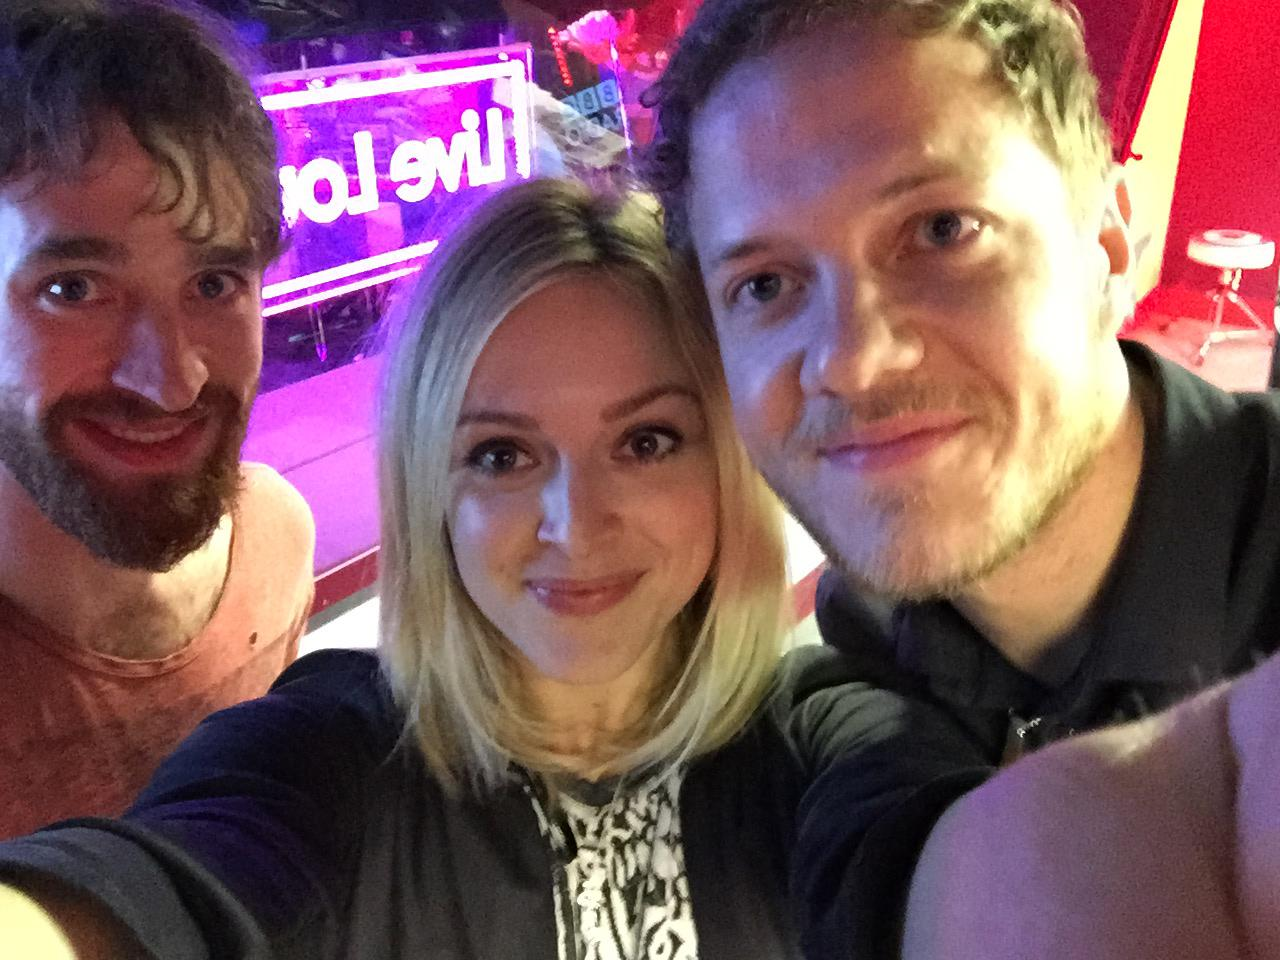 RT @BBCR1: So @Imaginedragons will be covering @taylorswift13's 'Blank Space' in the Live Lounge at midday. Exciting! http://t.co/SPKhm7szMH